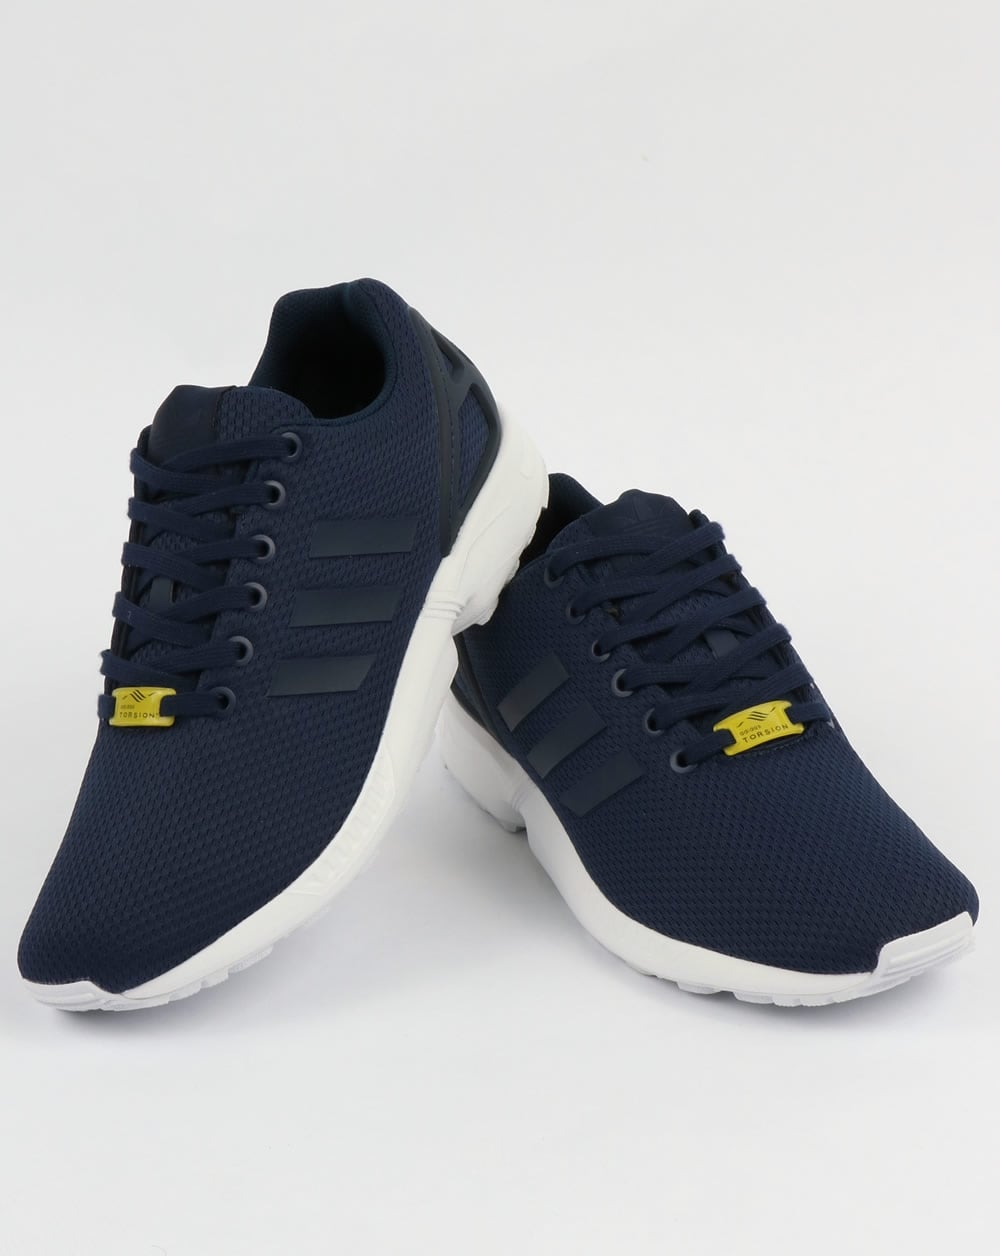 quality design d1cb5 78dcc Adidas ZX Flux Trainers New Navy/White